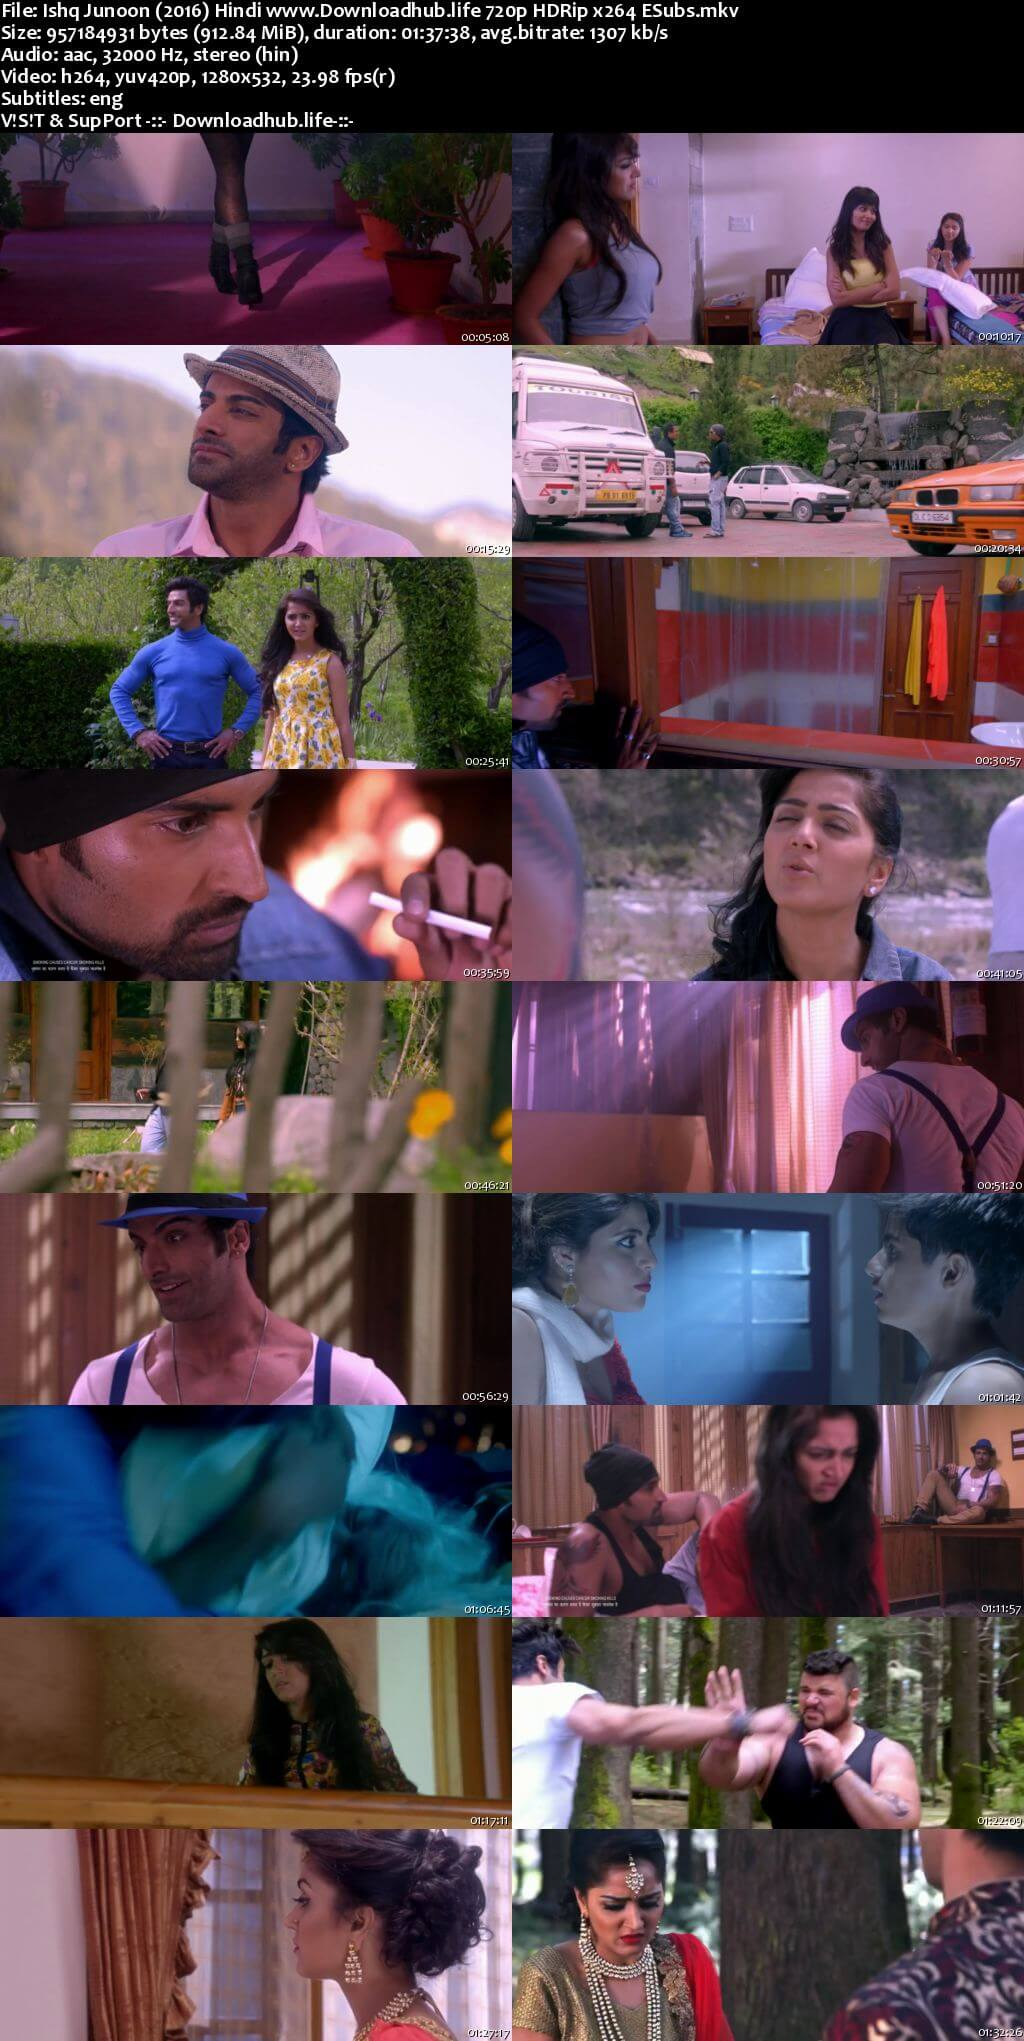 Ishq Junoon The Heat is On 2016 Hindi 720p HDRip ESubs